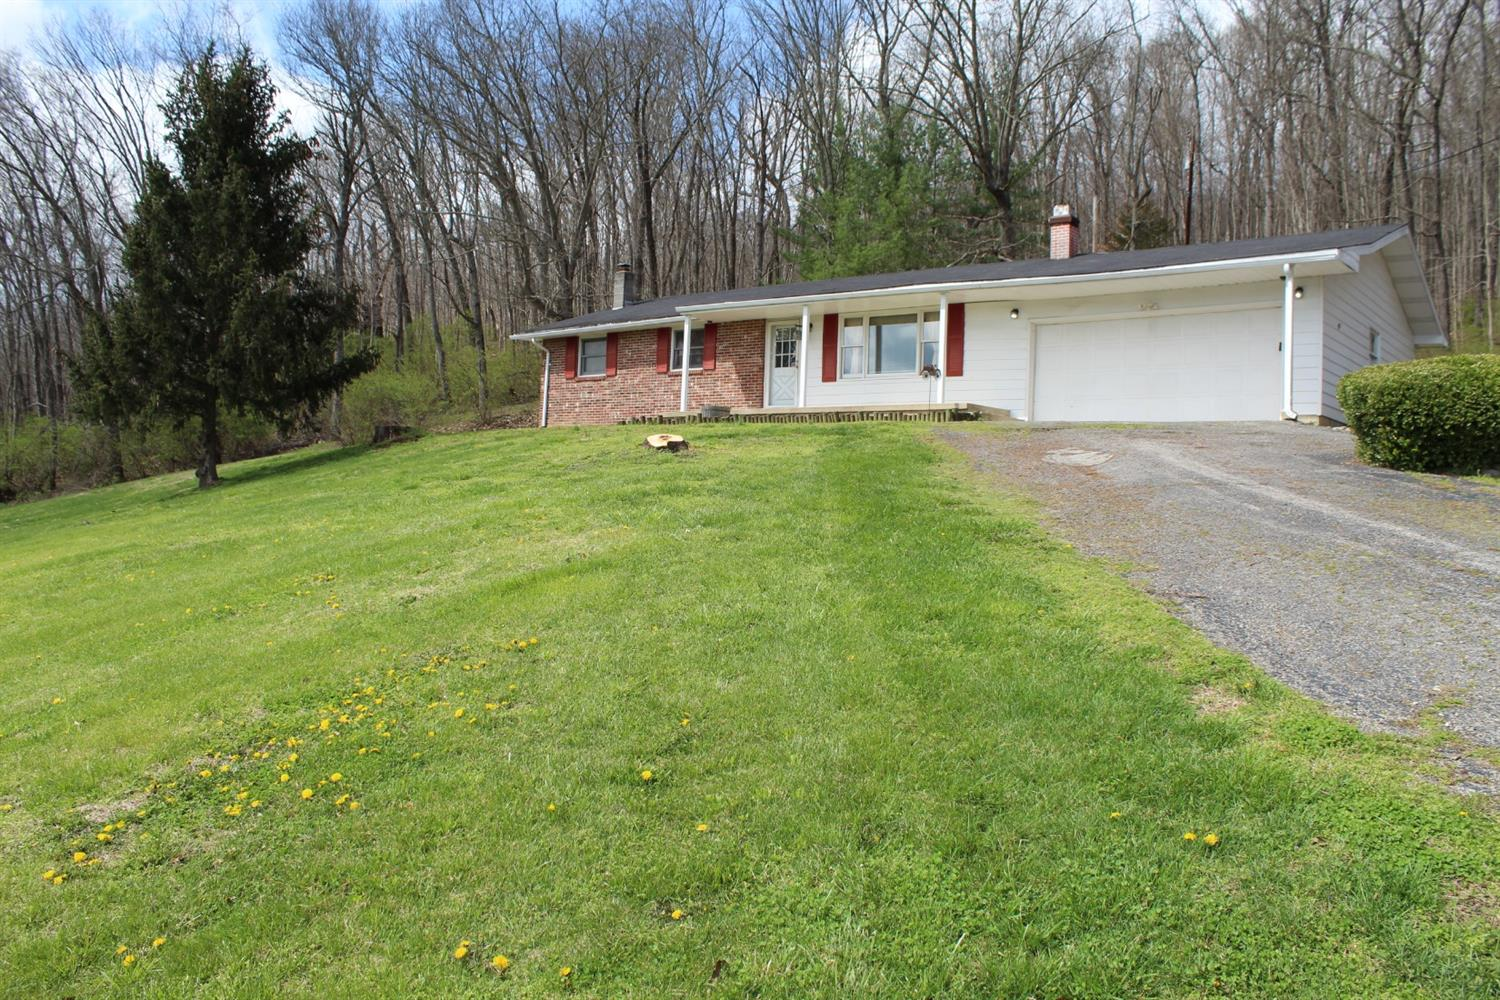 Photo 1 for 889 Tong Hollow Rd Ross County, OH 45612